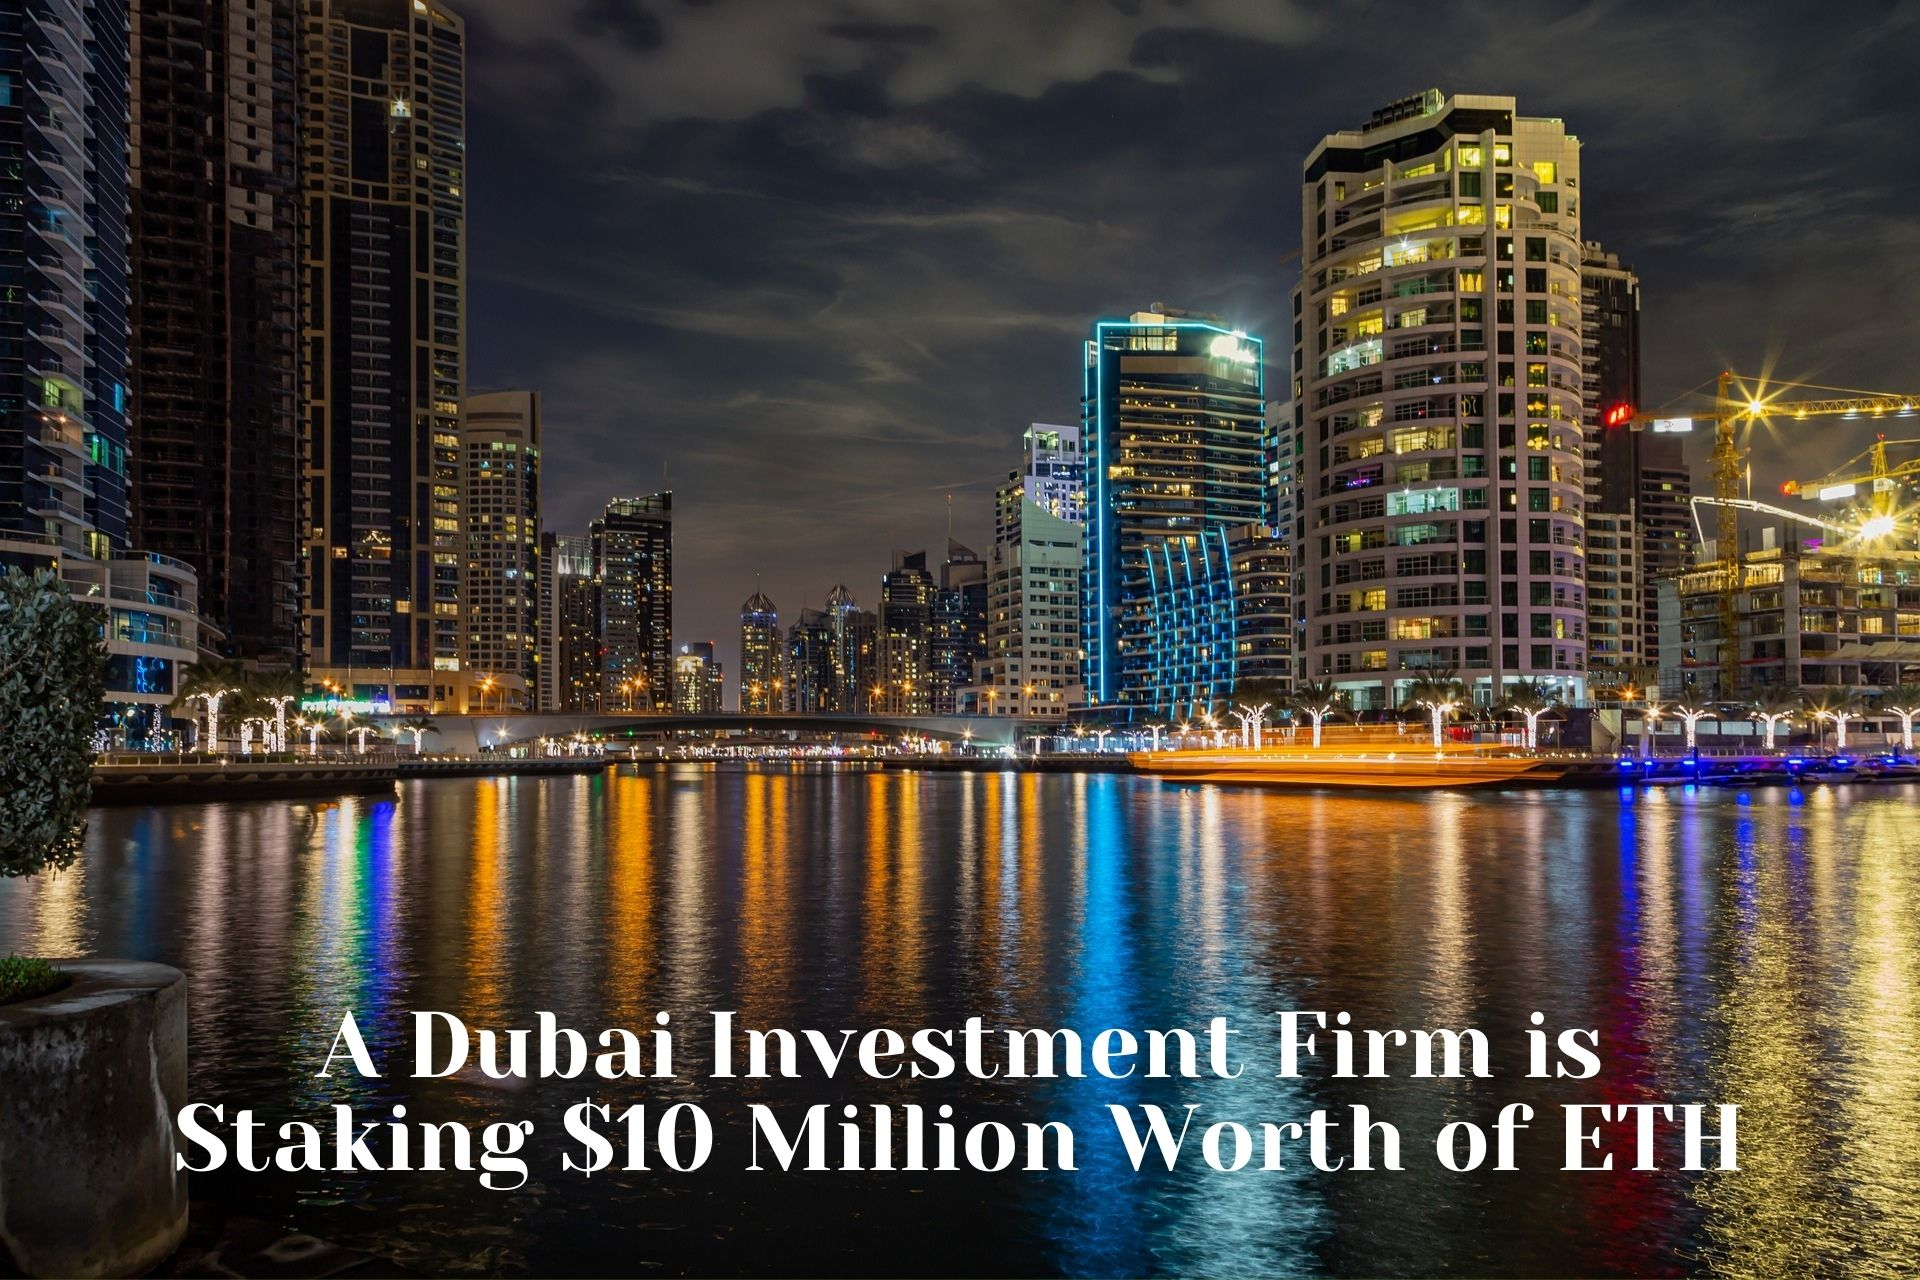 A Dubai Investment Firm is Staking $10 Million Worth of ETH to Support the Eth2 Launch